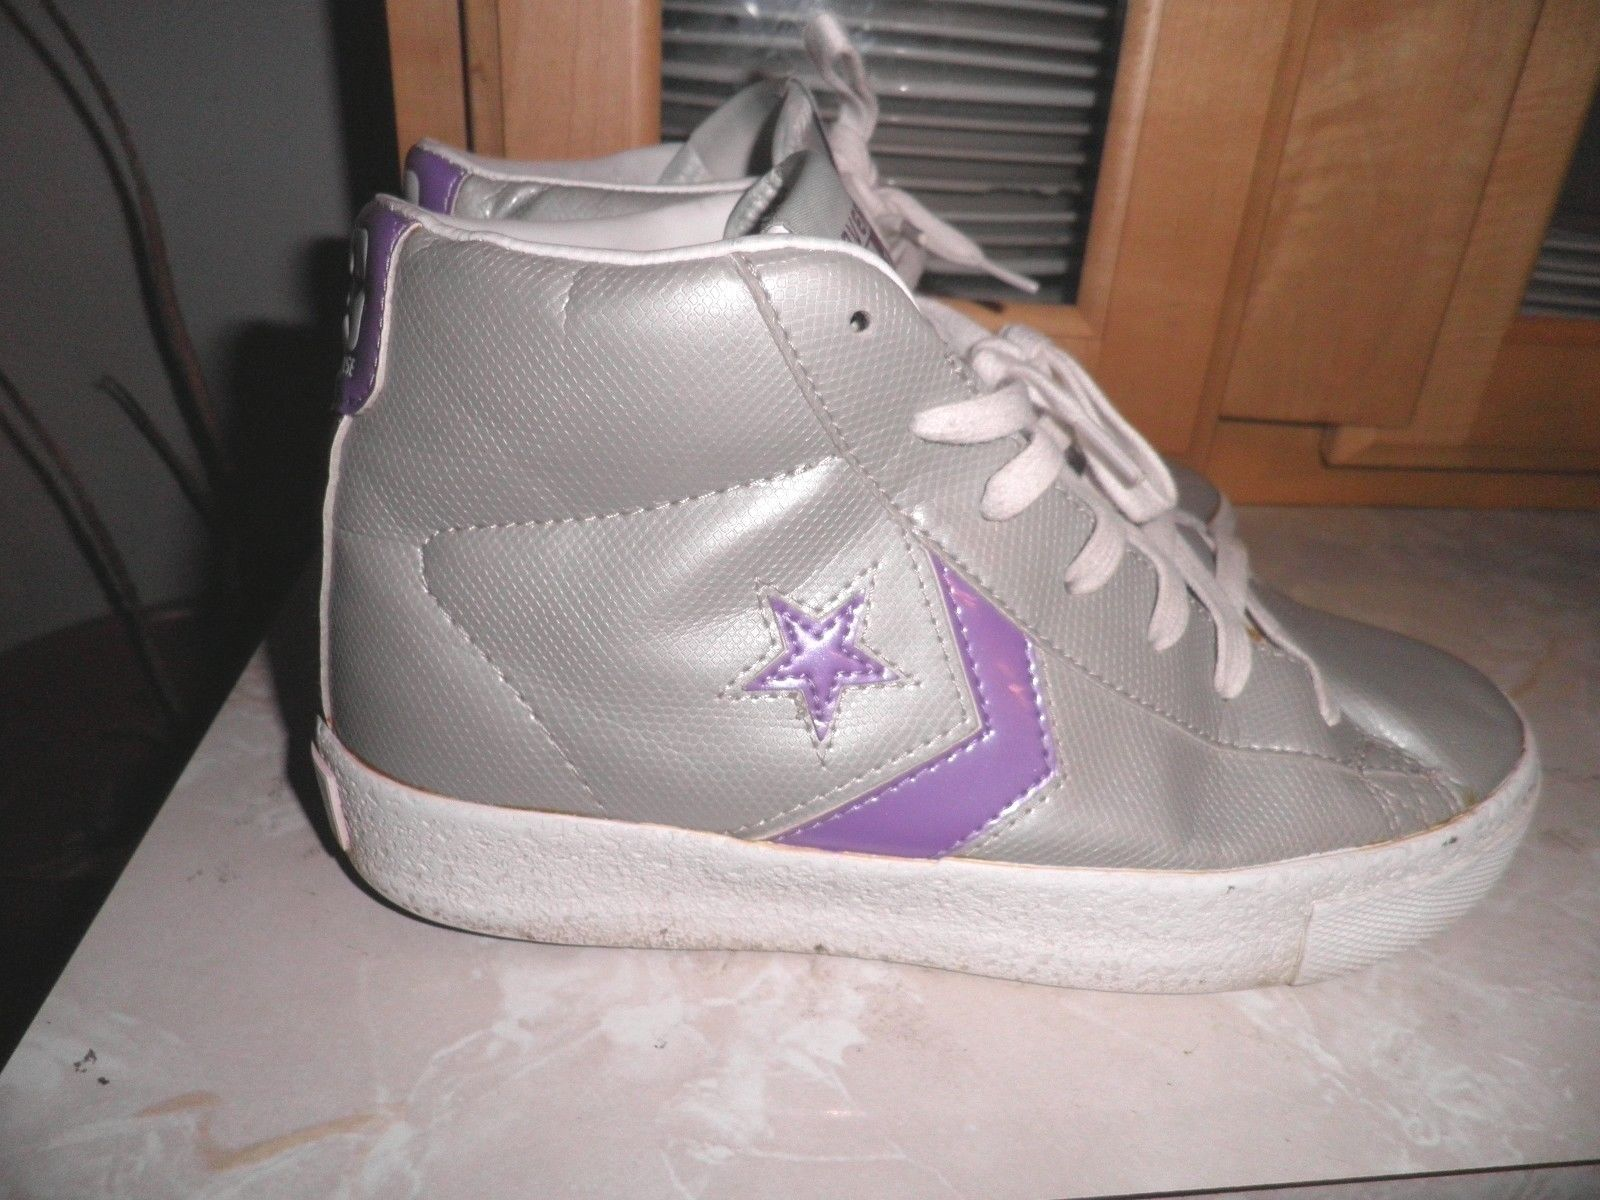 Converse Cons One Stars Steal the Show Shoes Gray Purple Size 4.5 Kids 6  Womens  be498b7bb5